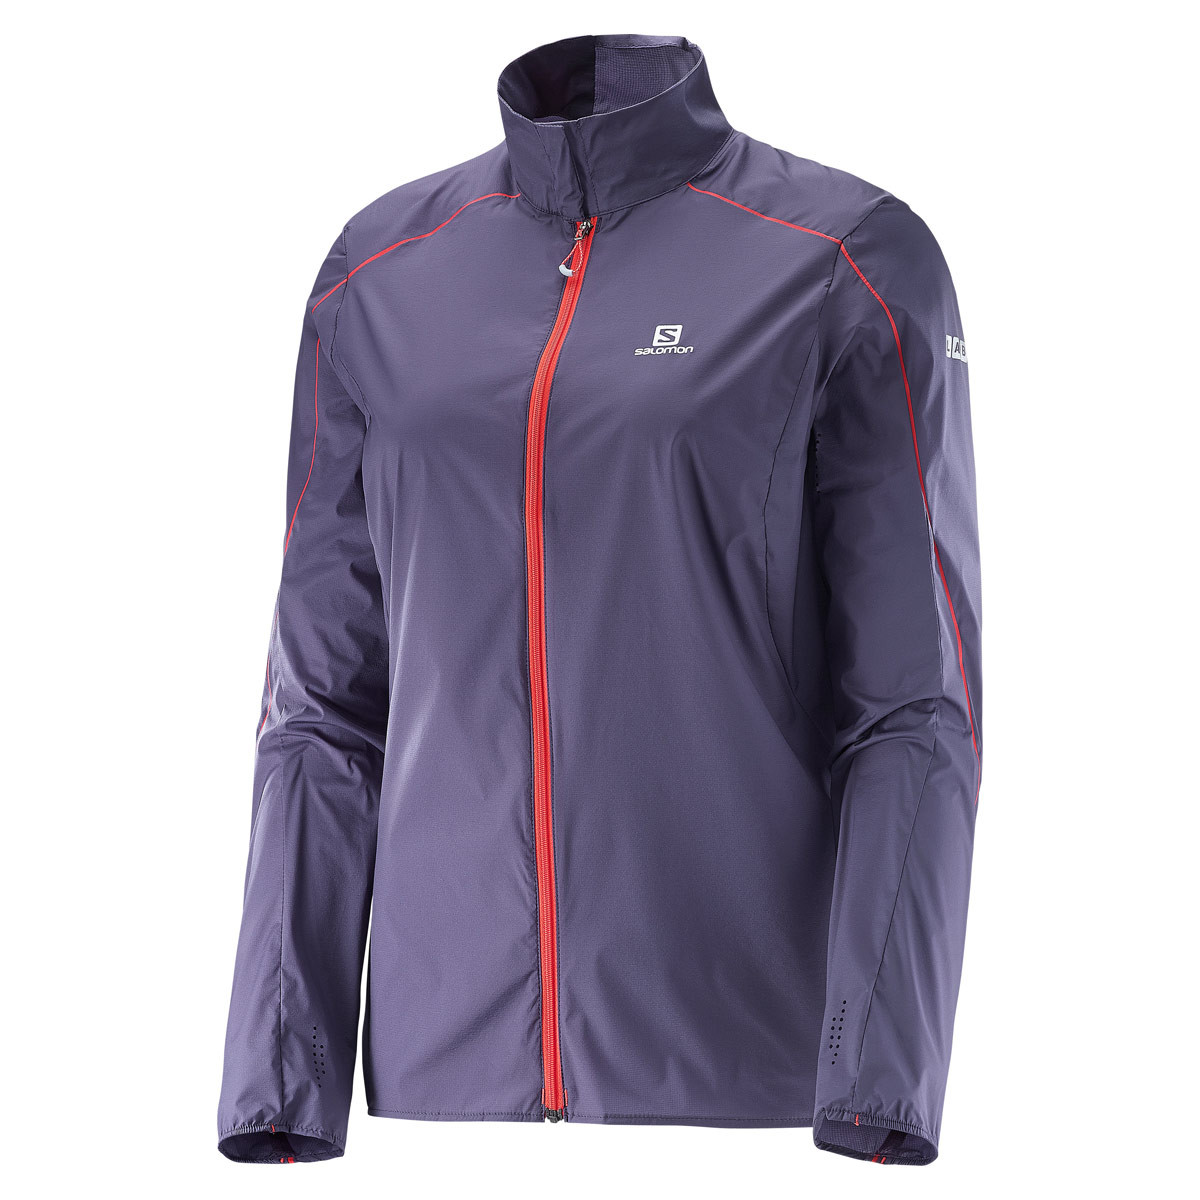 7a656fd3a Salomon S-Lab Light Jacket - Running jackets for Women - Purple | 21RUN